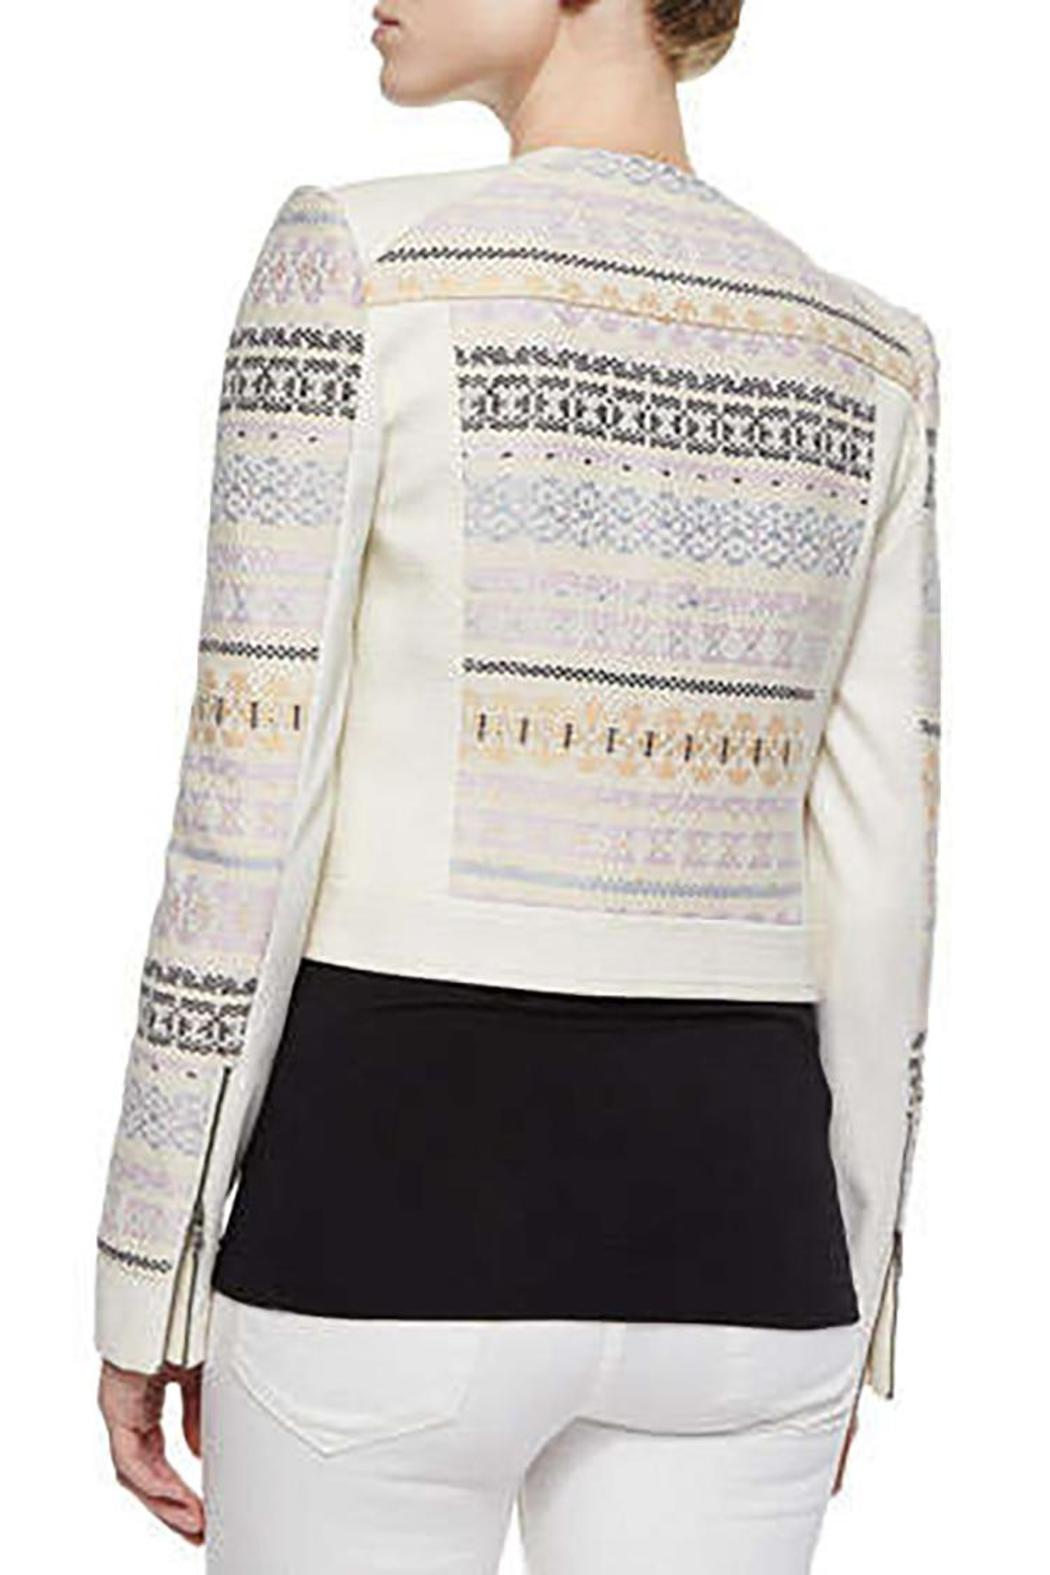 BCBG Max Azria Cody Embroidered Jacket - Front Full Image